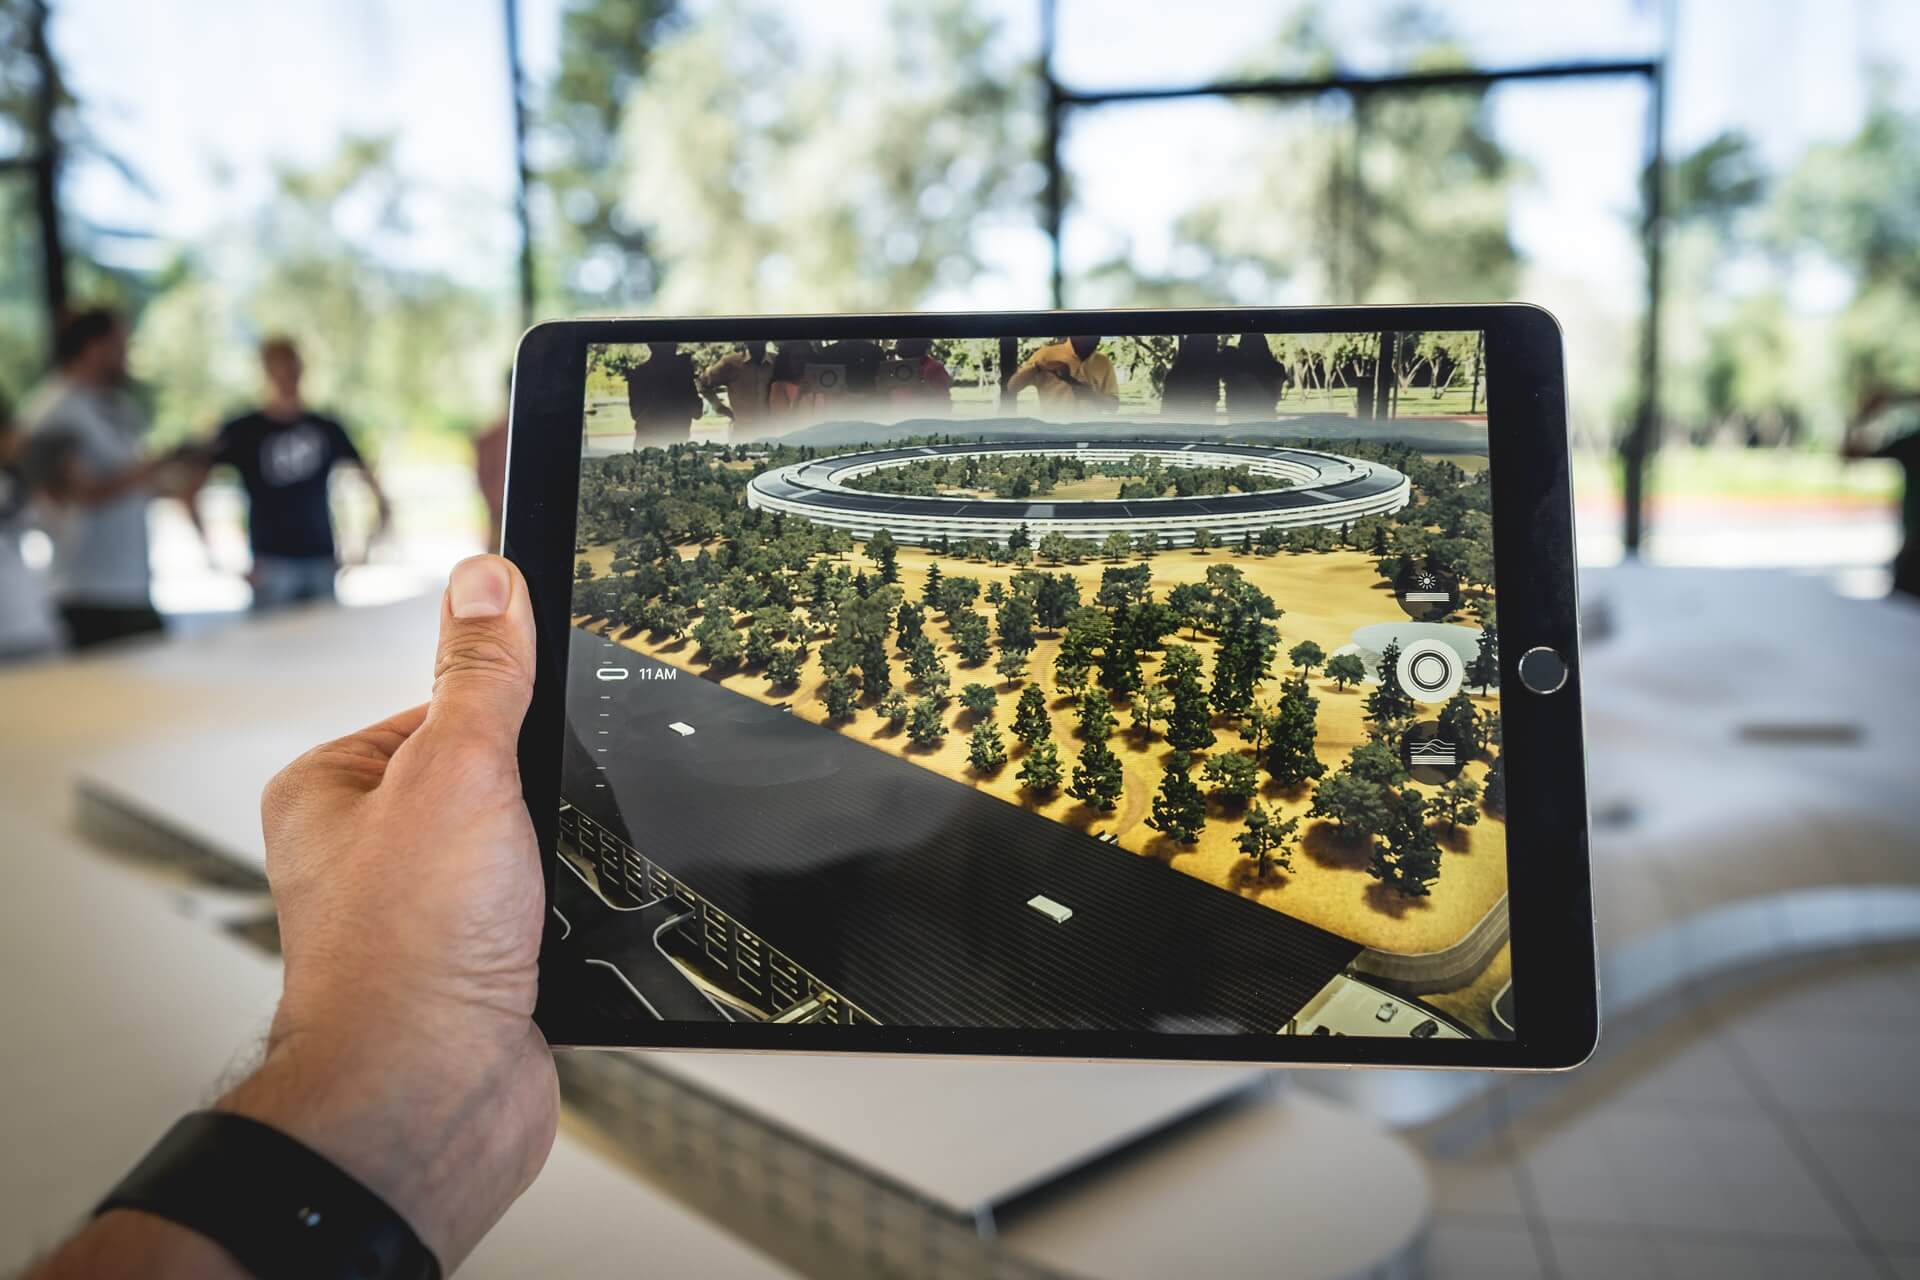 Augmented Reality presentation on a tablet